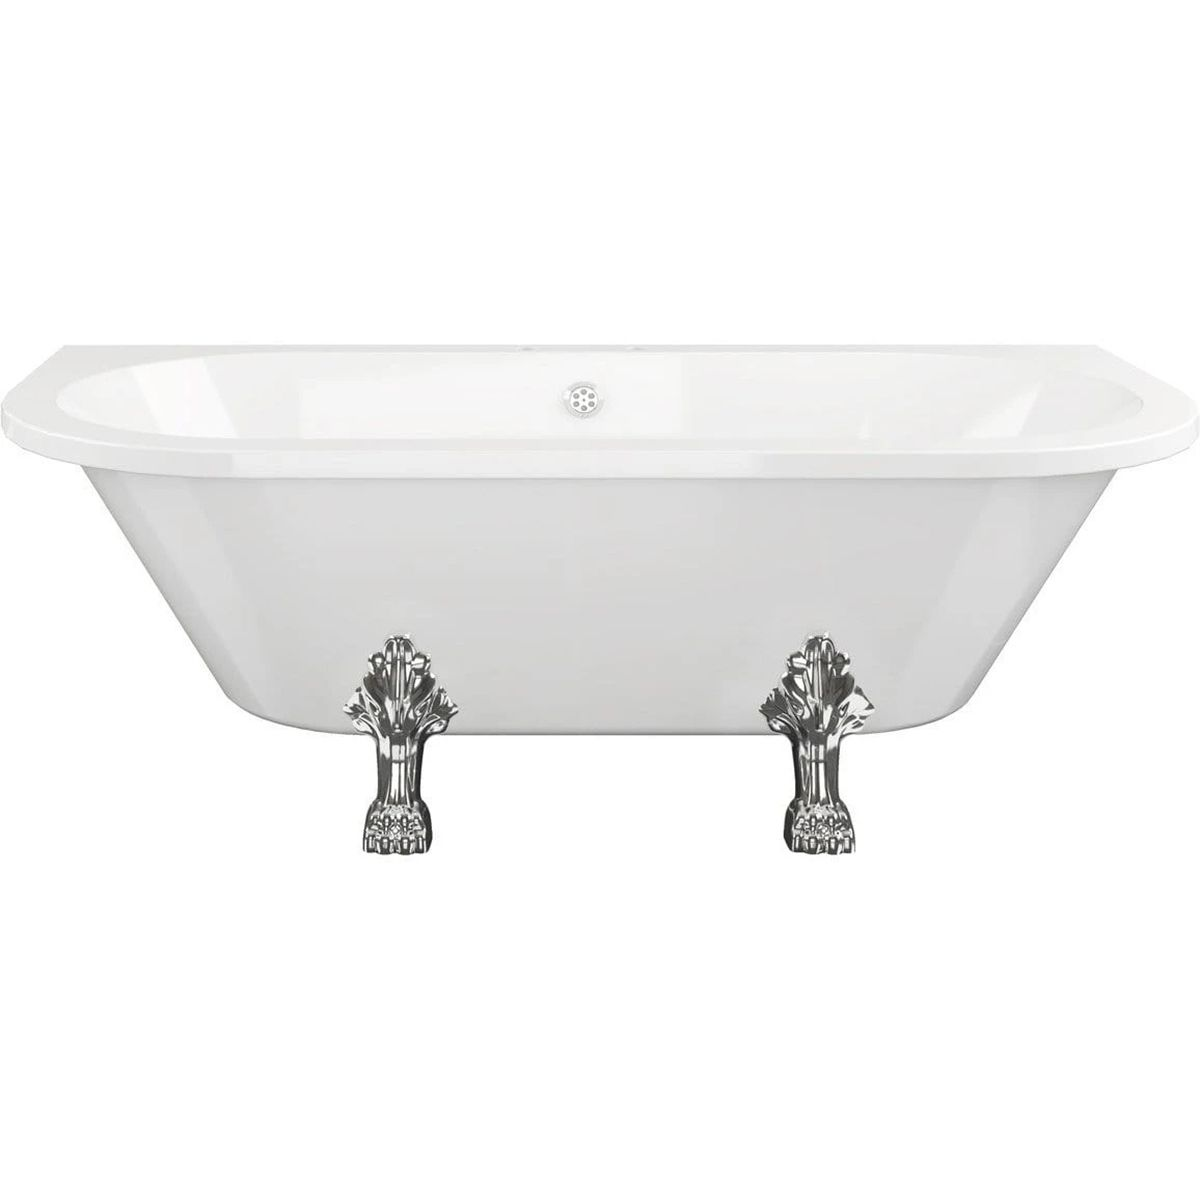 Bathrooms To Love Traditional Back To Wall Bath with Feet 1700mm x 800mm 2